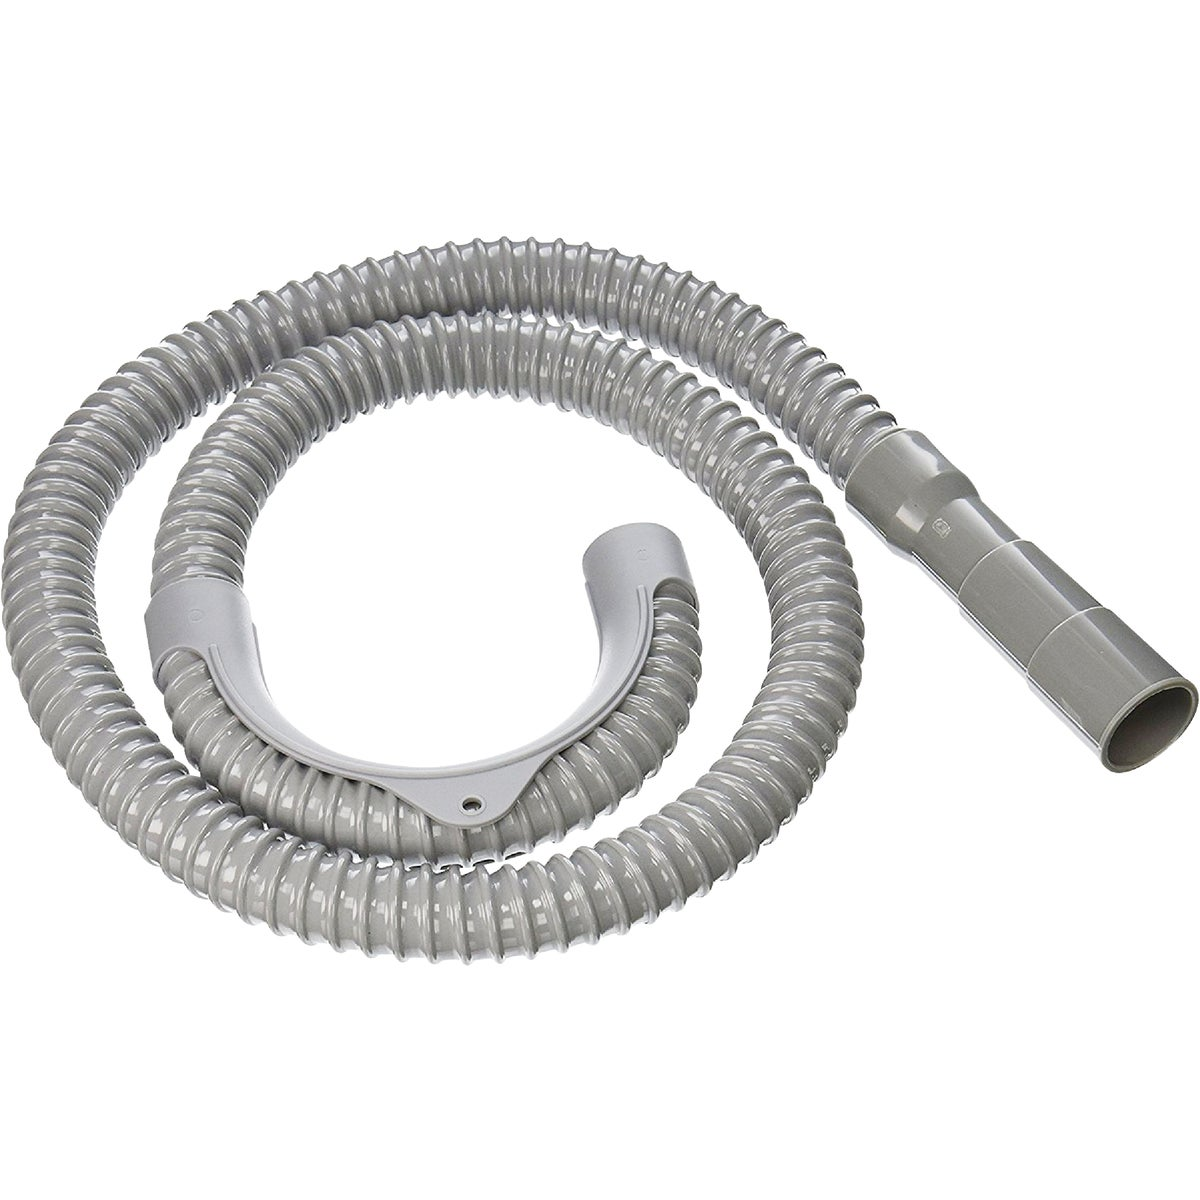 CORRUGATED DRAIN HOSE - 441910 by Wm H Harvey Co